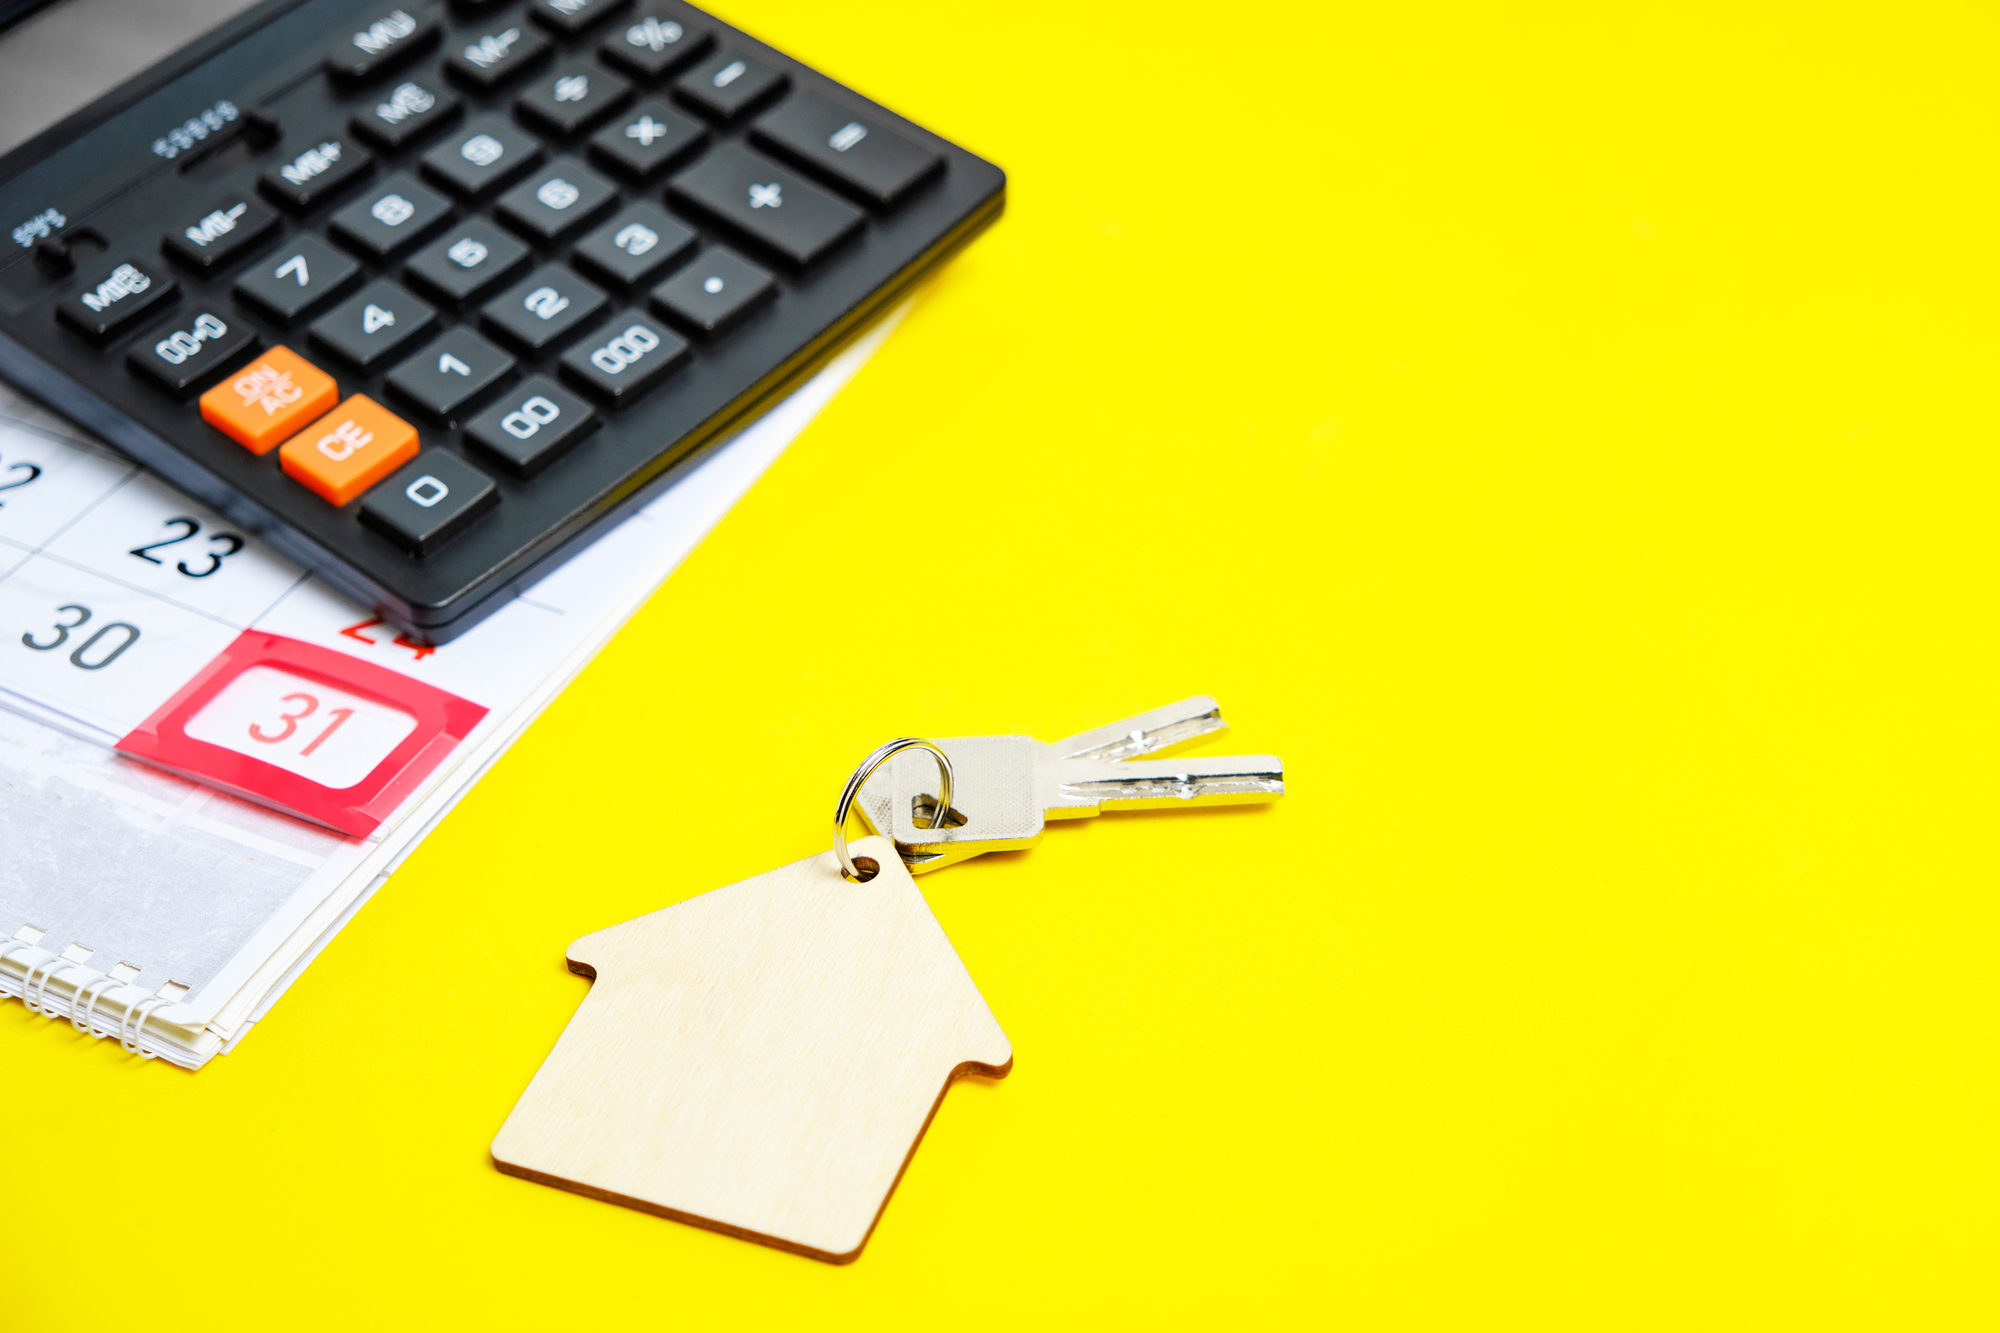 Calendar End of the Month Calculator Keys to a House or Apartment on a Yellow Background Concept Buying an Apartment House New Year Gift